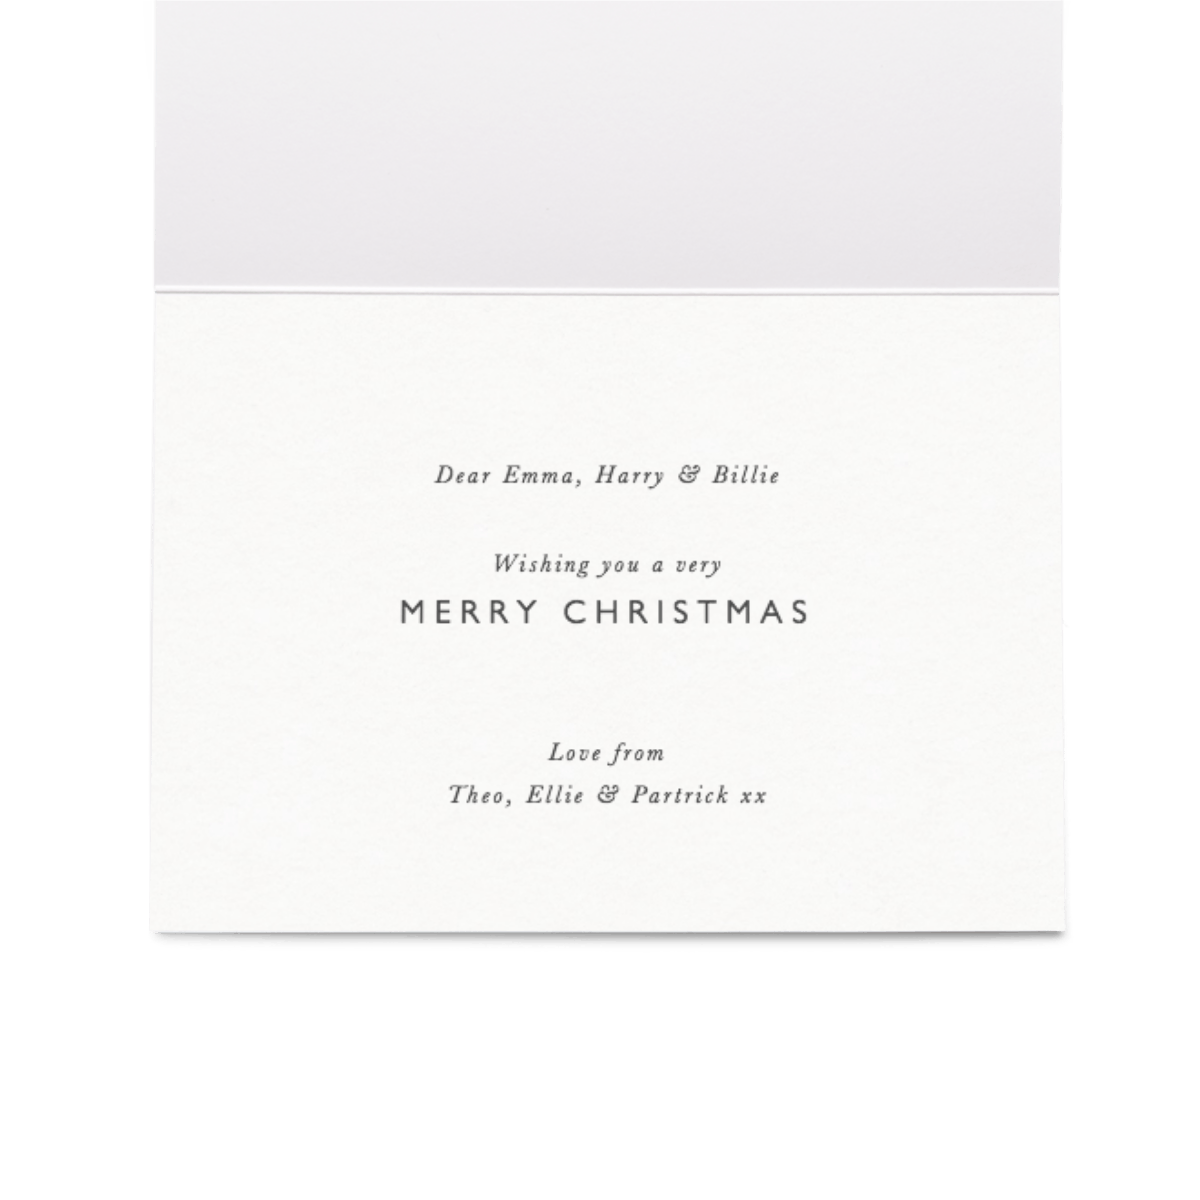 Https%3a%2f%2fwww.papier.com%2fproduct image%2f48368%2f20%2fmerry christmas 11881 inside 1539008436.png?ixlib=rb 1.1